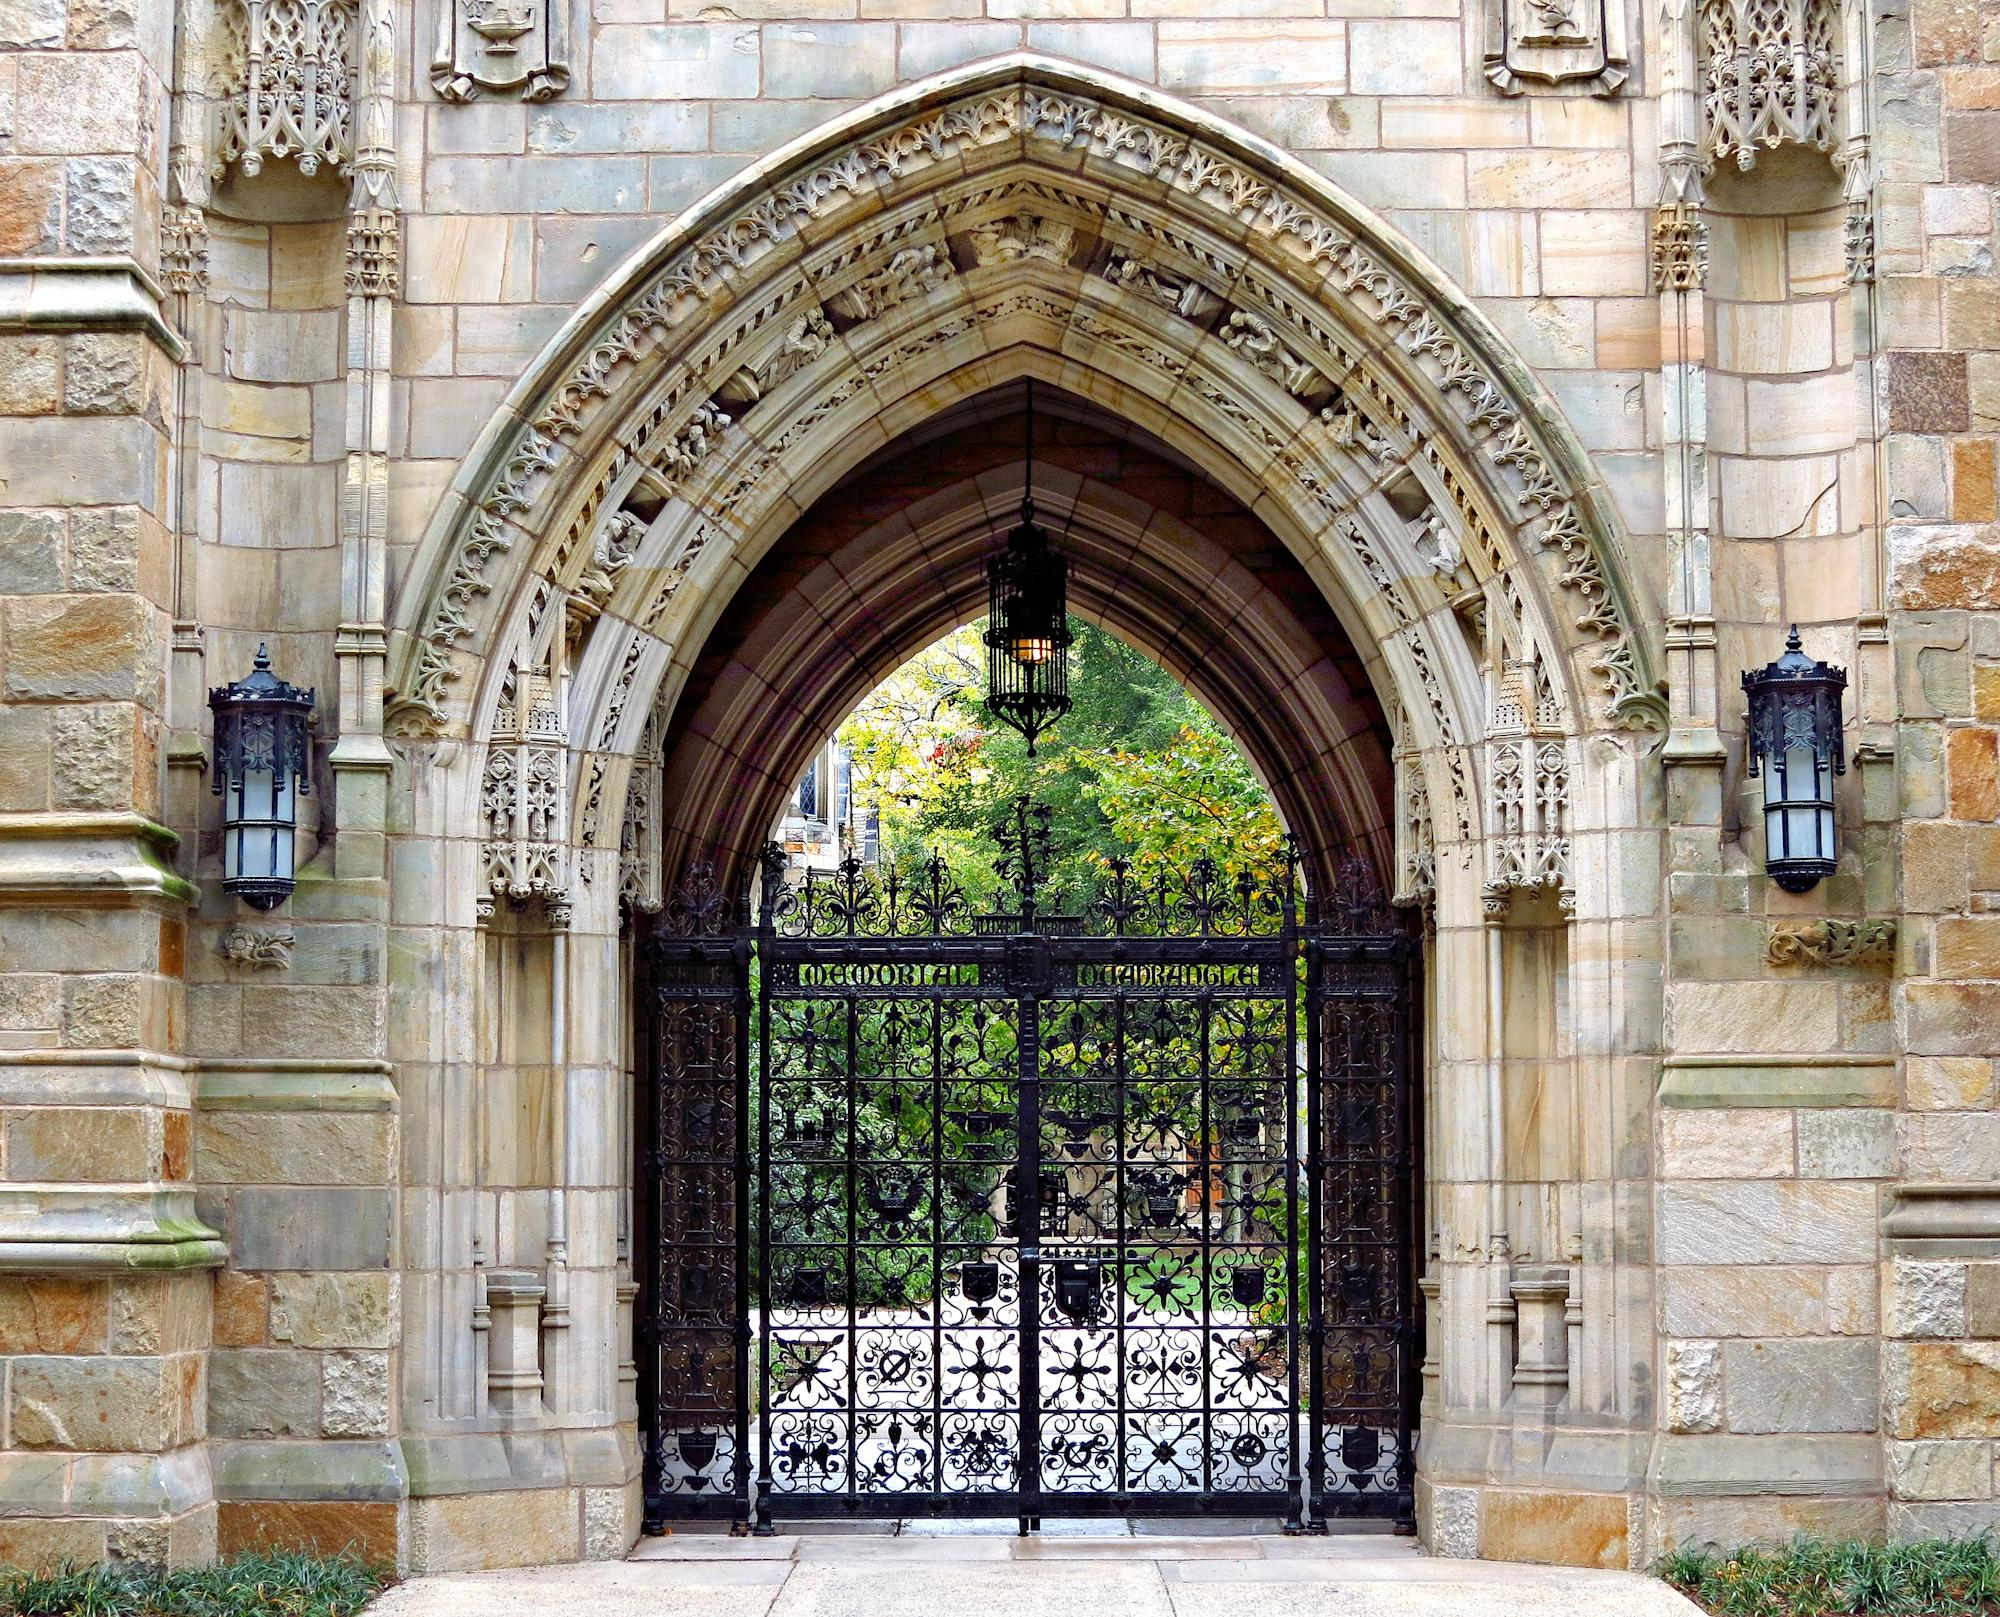 Yale may have just turned institutional investing on its head with a new diversity edict